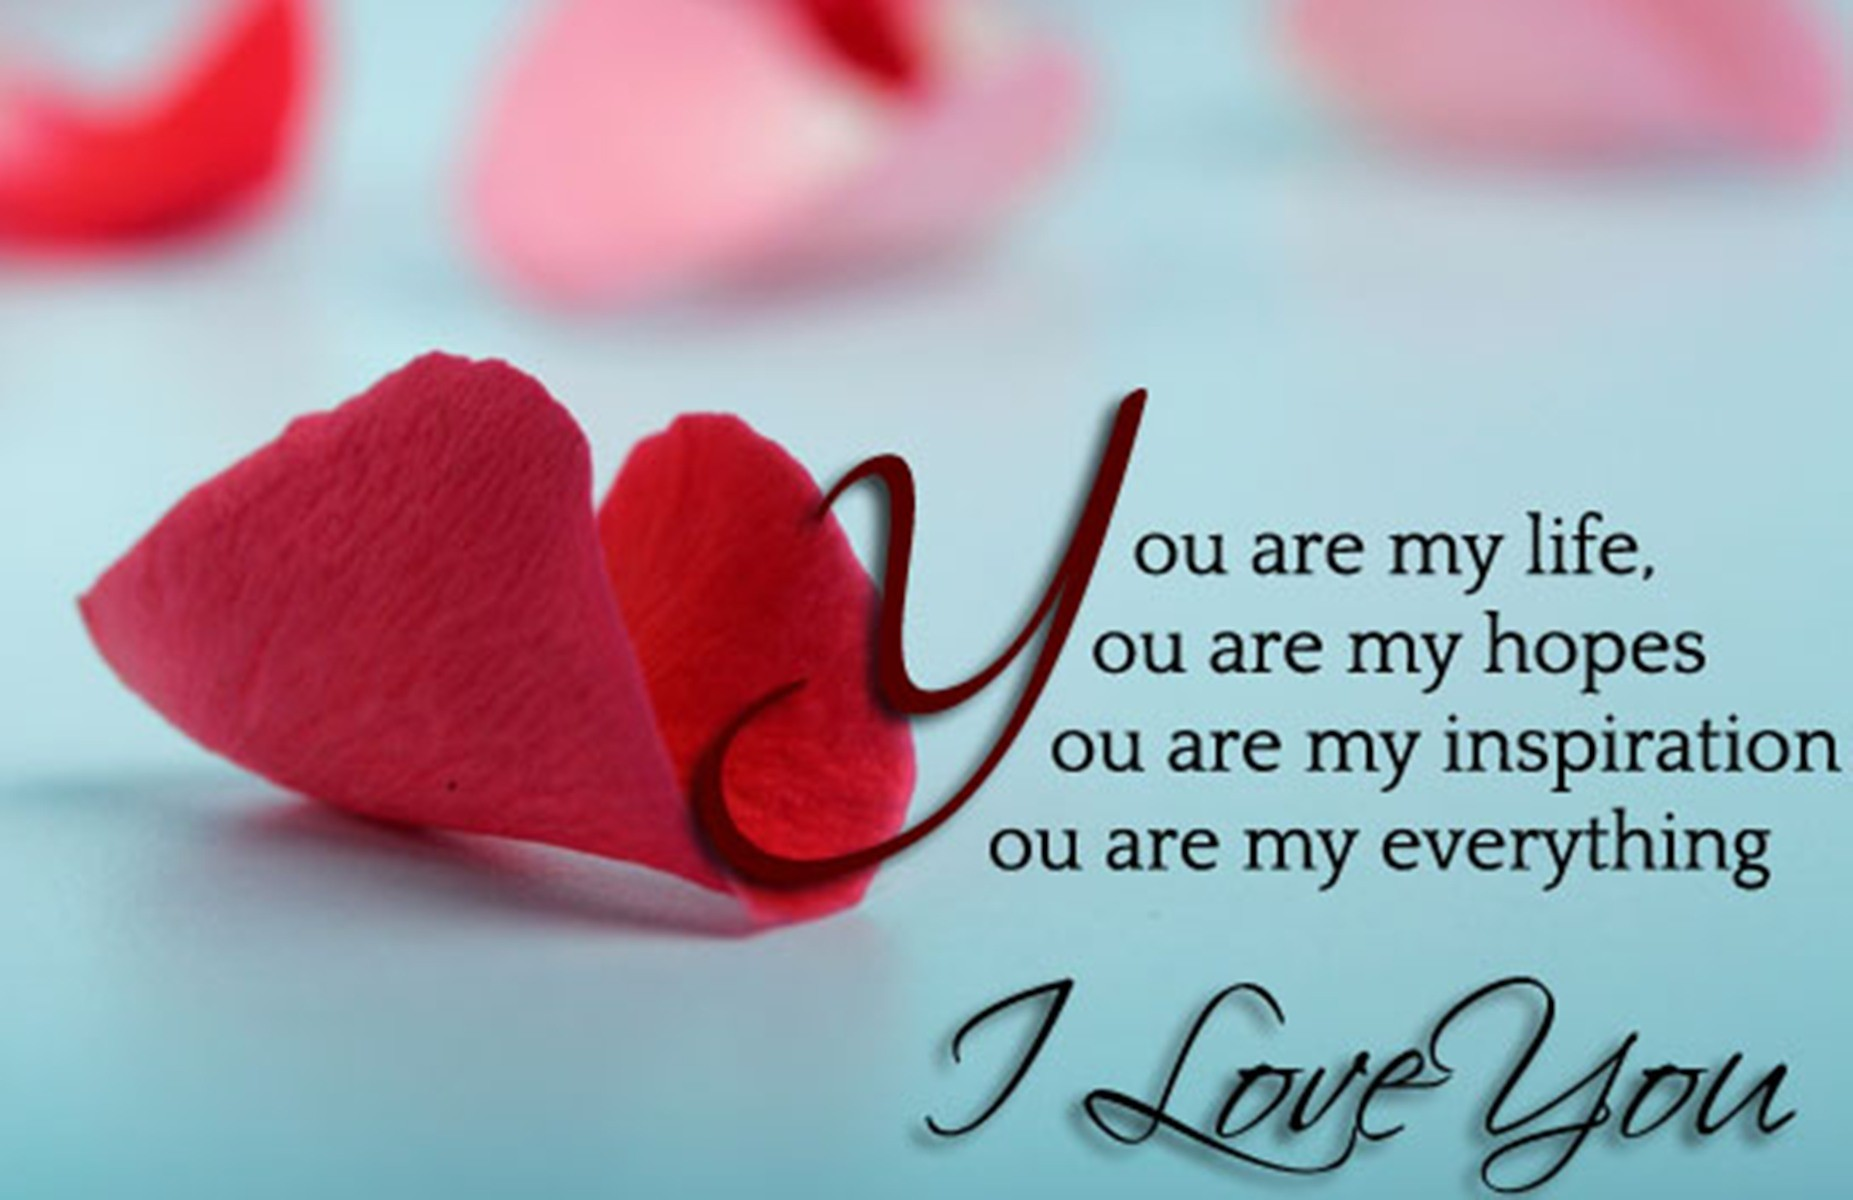 Free Love Quotes Love Quotes Wallpapers For Mobile Free Download Happy New Year